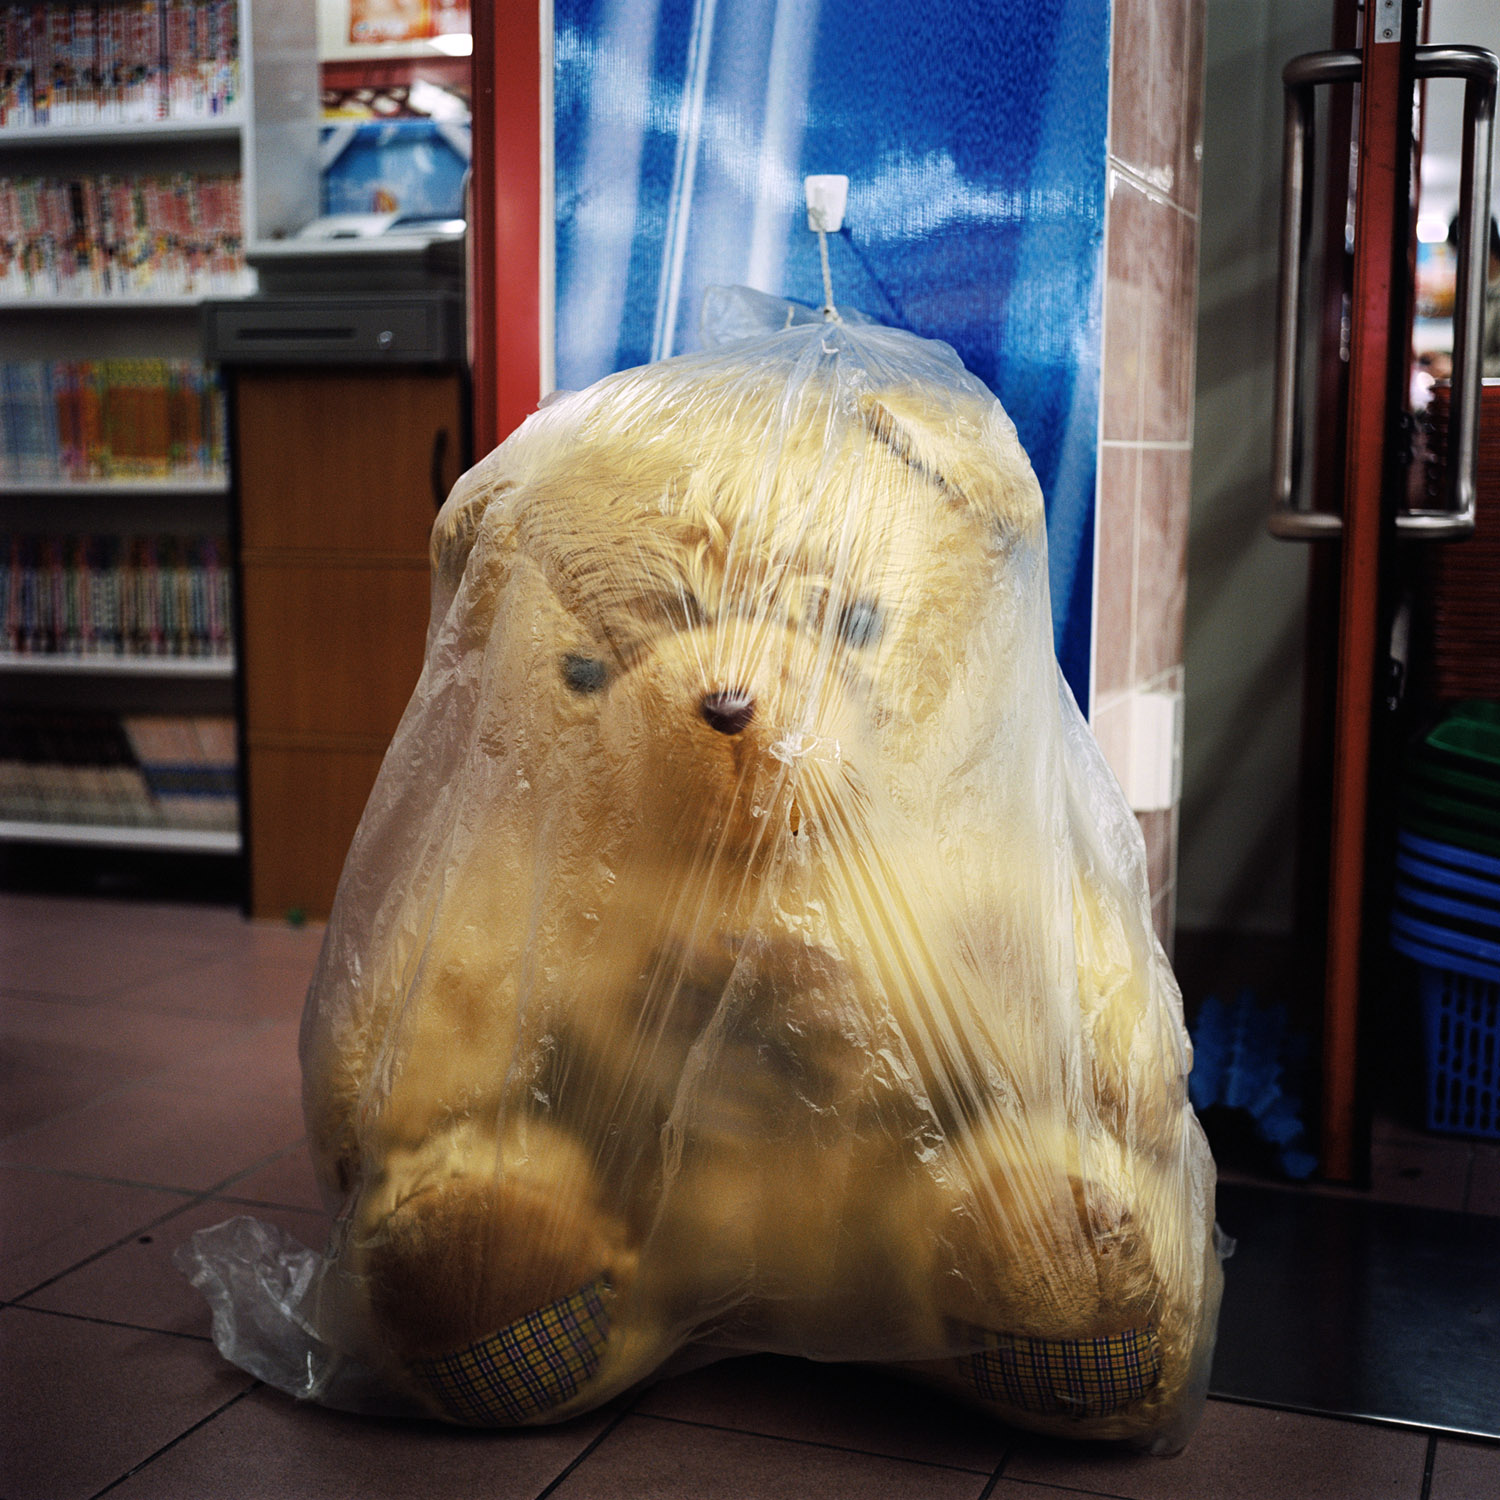 Plastic Wrapped Bear, 2005, from the series Touchstones by Abby Storey.